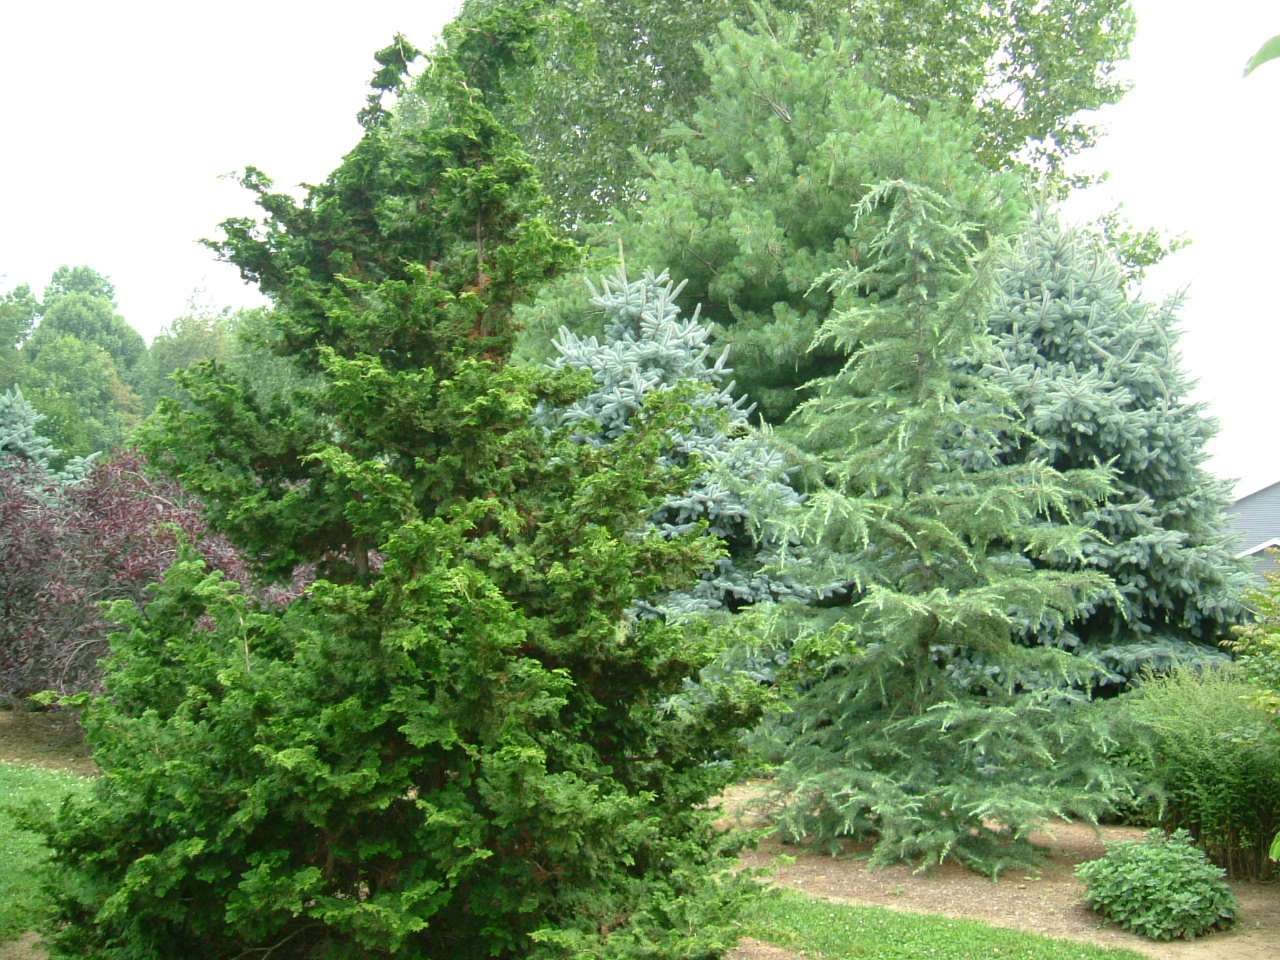 Ornamental evergreen trees - Hill Side Plantings Mixed Evergreens